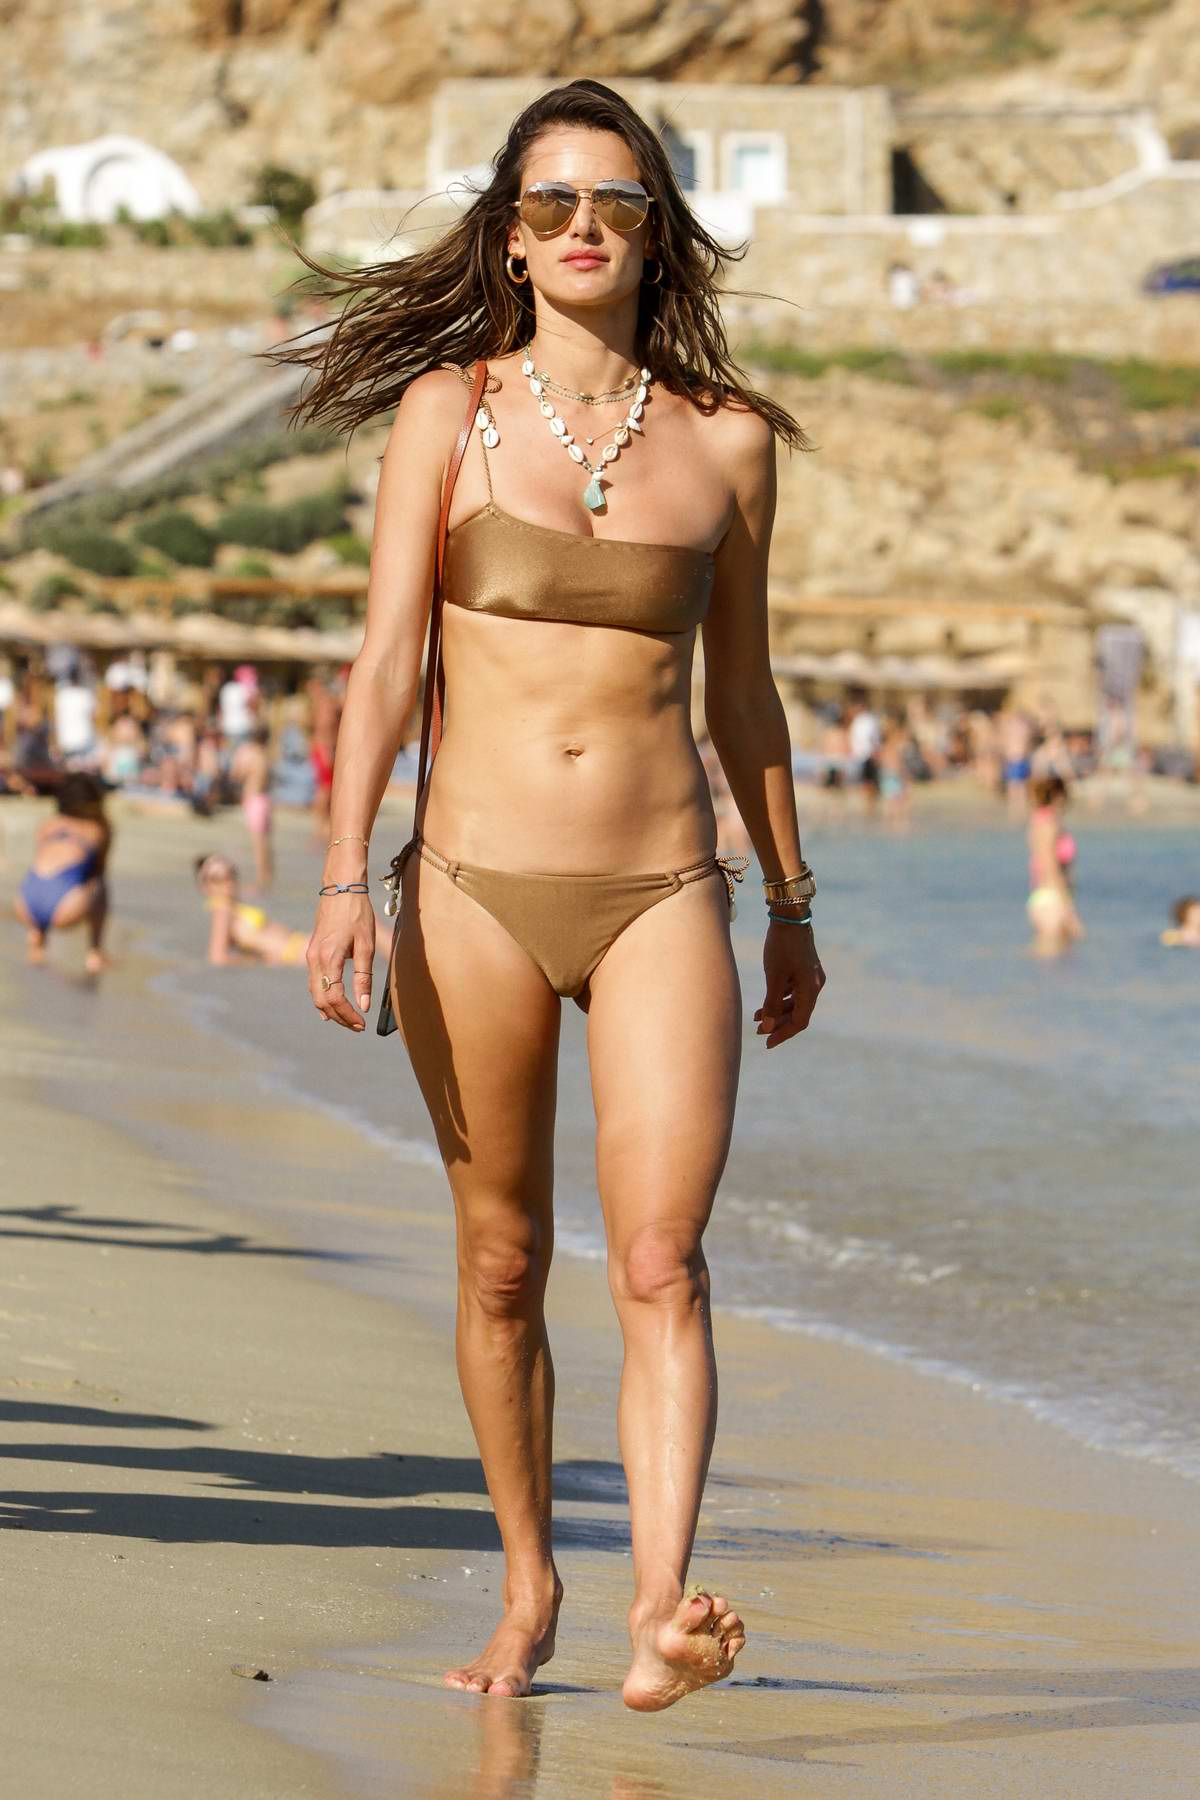 Alessandra Ambrosio stuns in metallic gold bikini while taking a stroll at the beach with friends in Mykonos, Greece